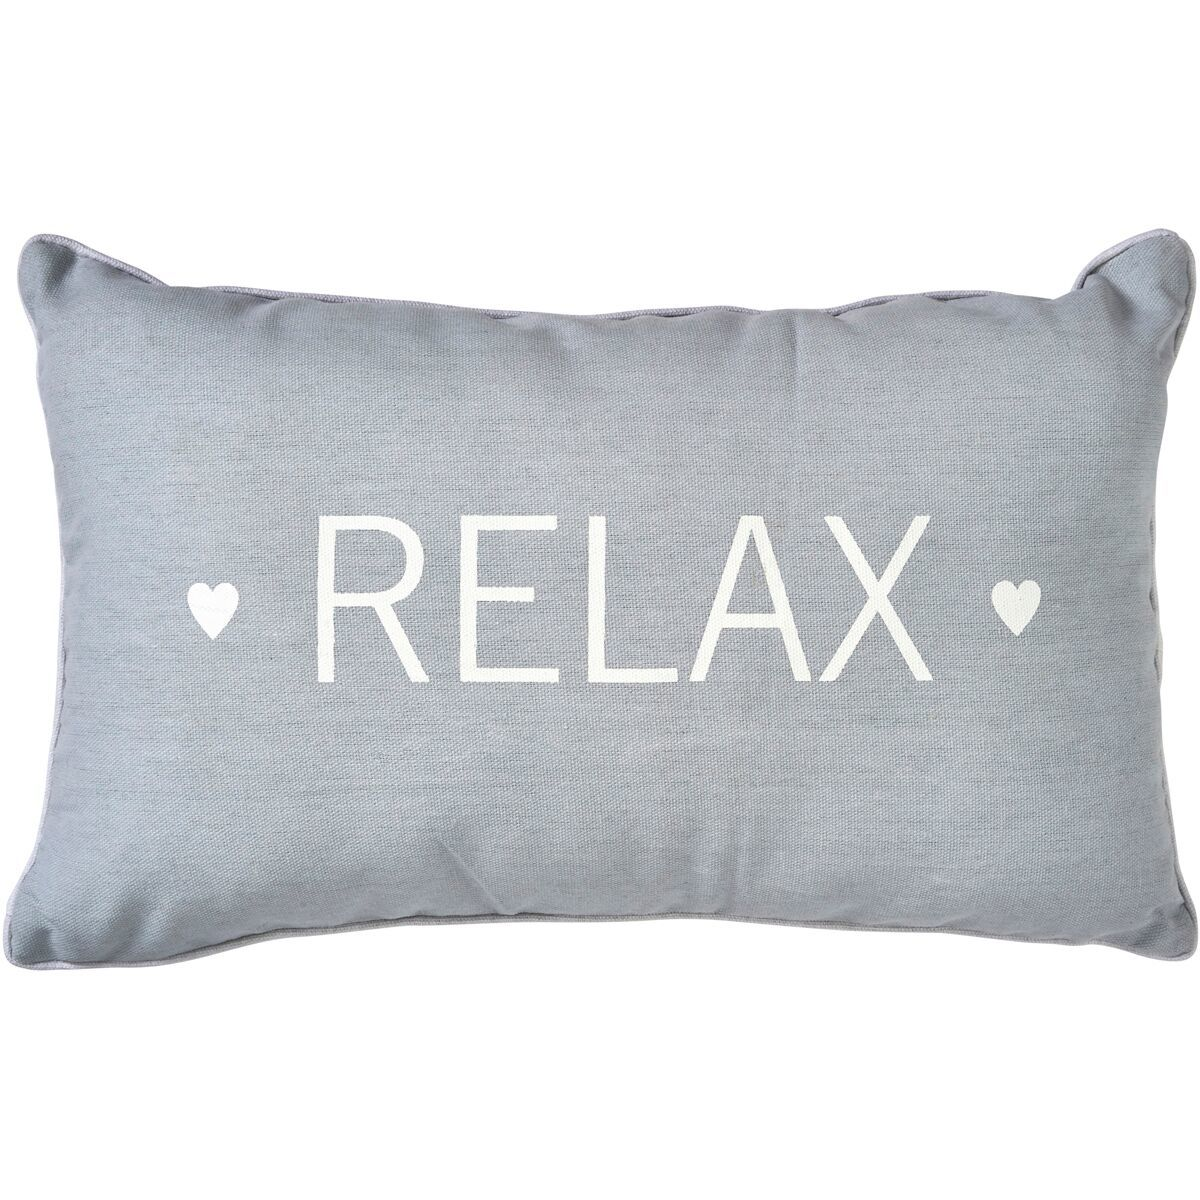 Relax Cushion image